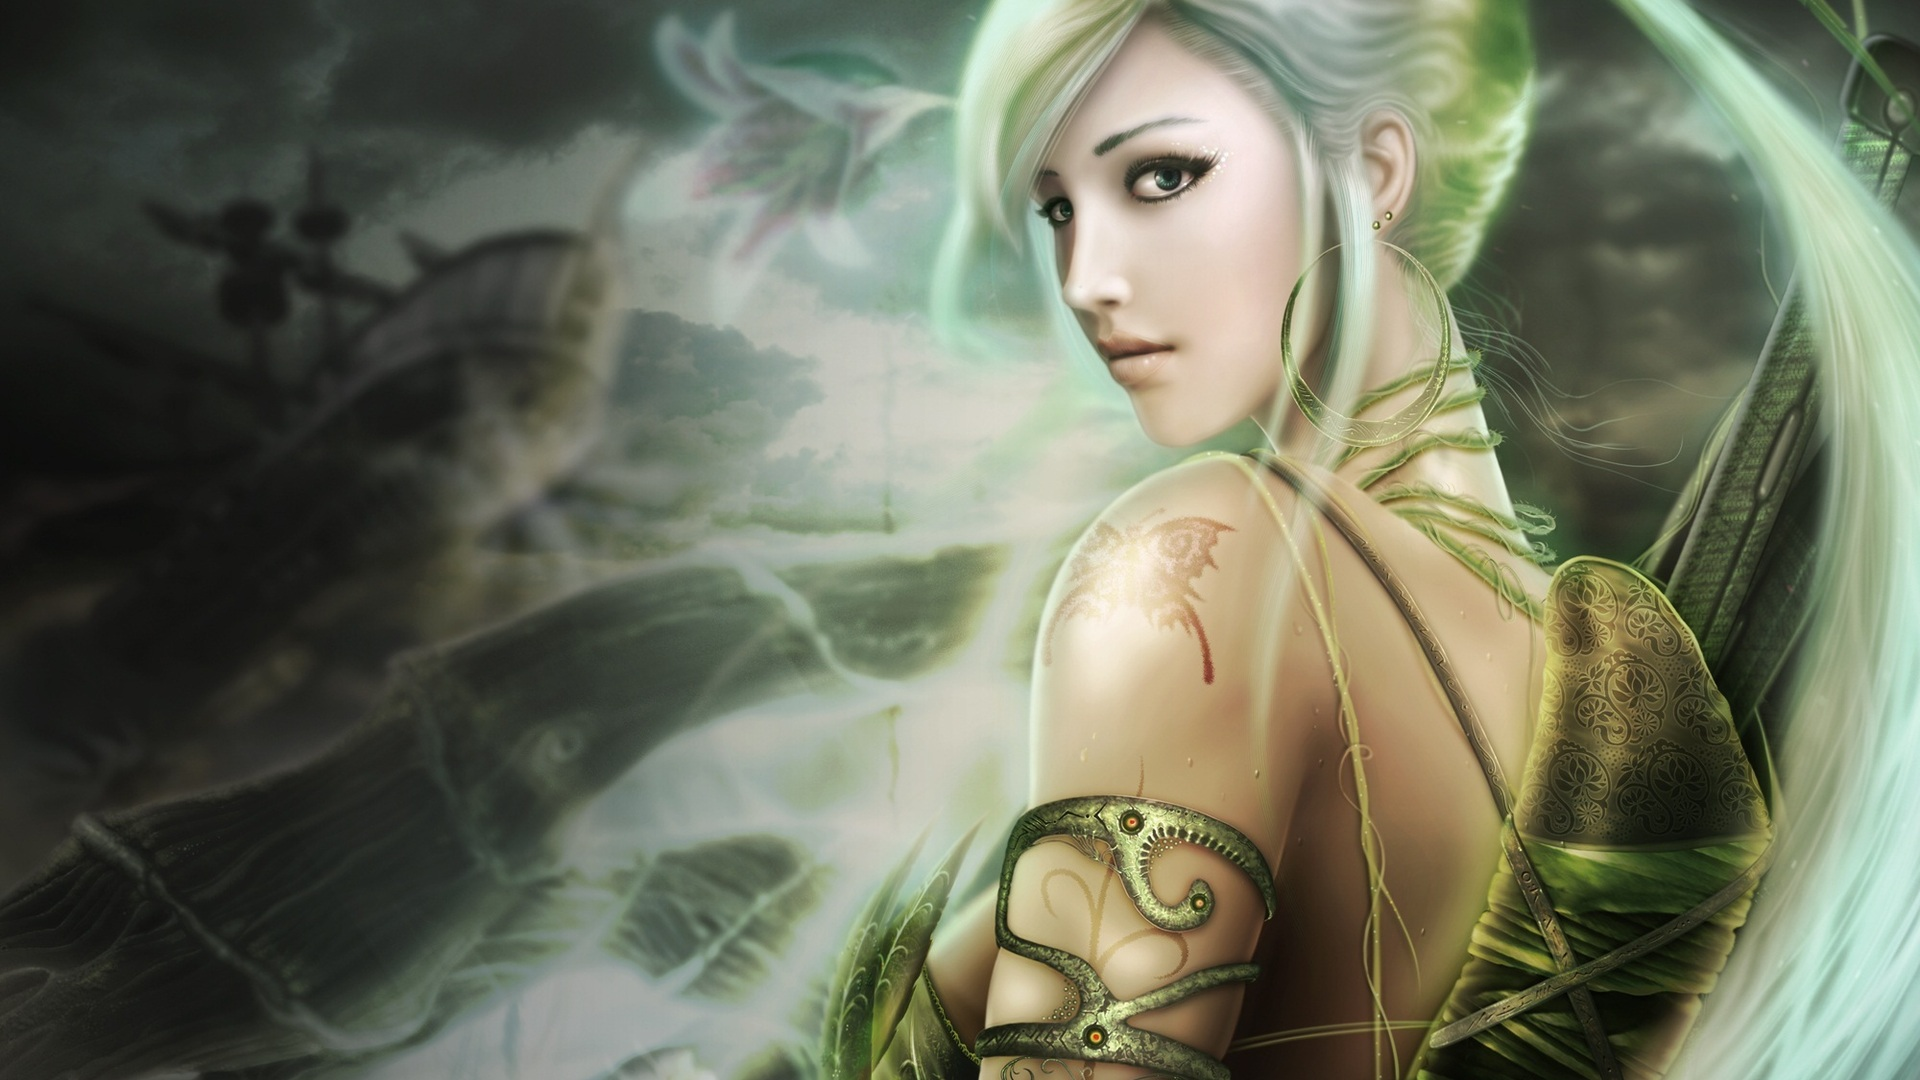 Fantasy Girl Hd Wallpaper